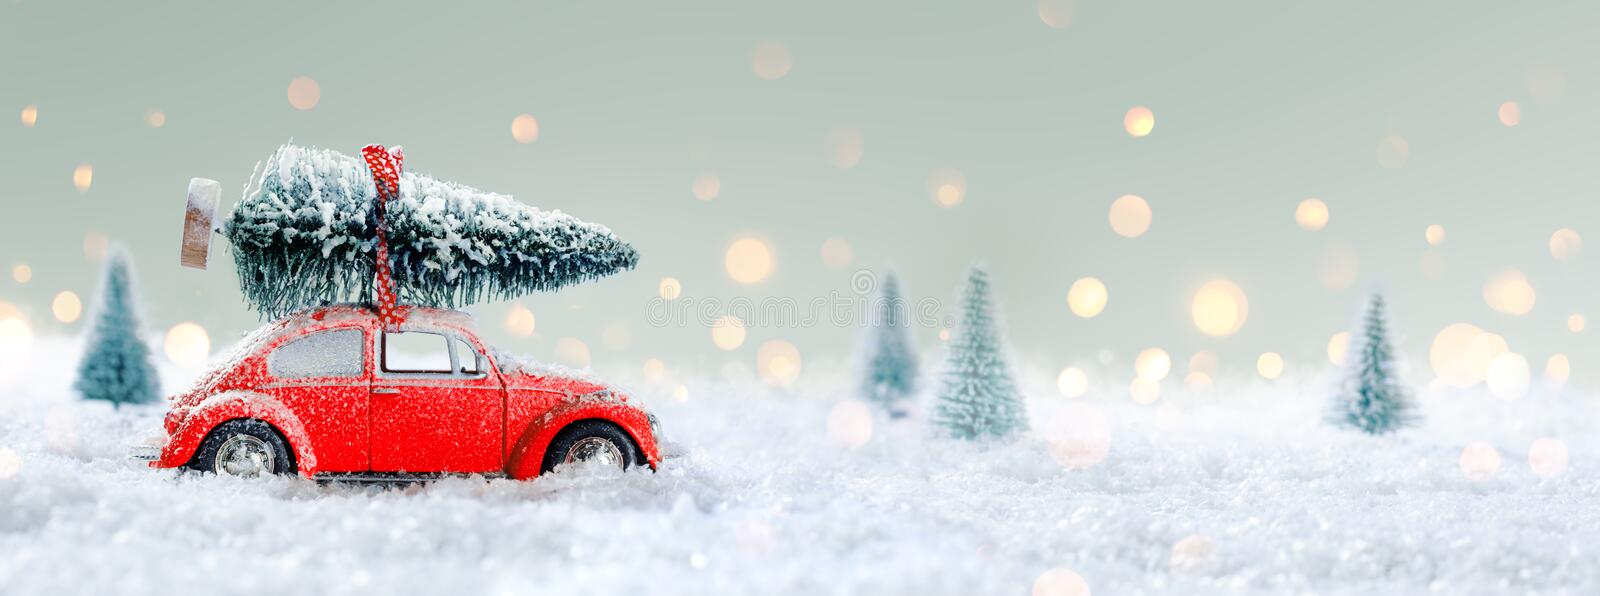 Red Car Carrying A Christmas Tree royalty free stock images